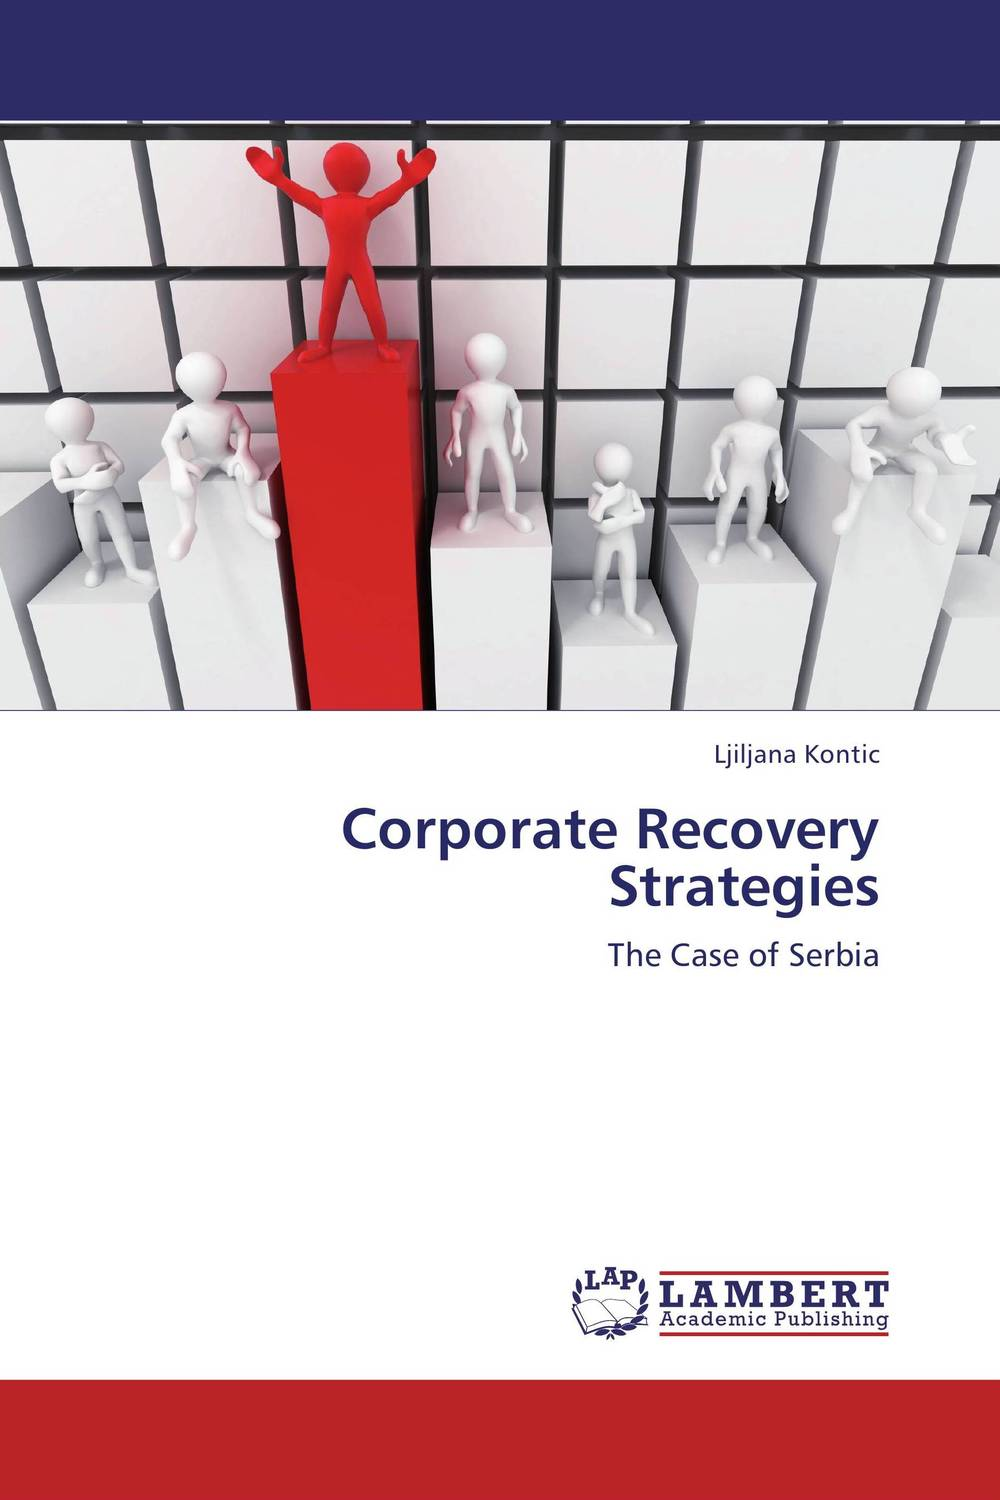 Corporate Recovery Strategies